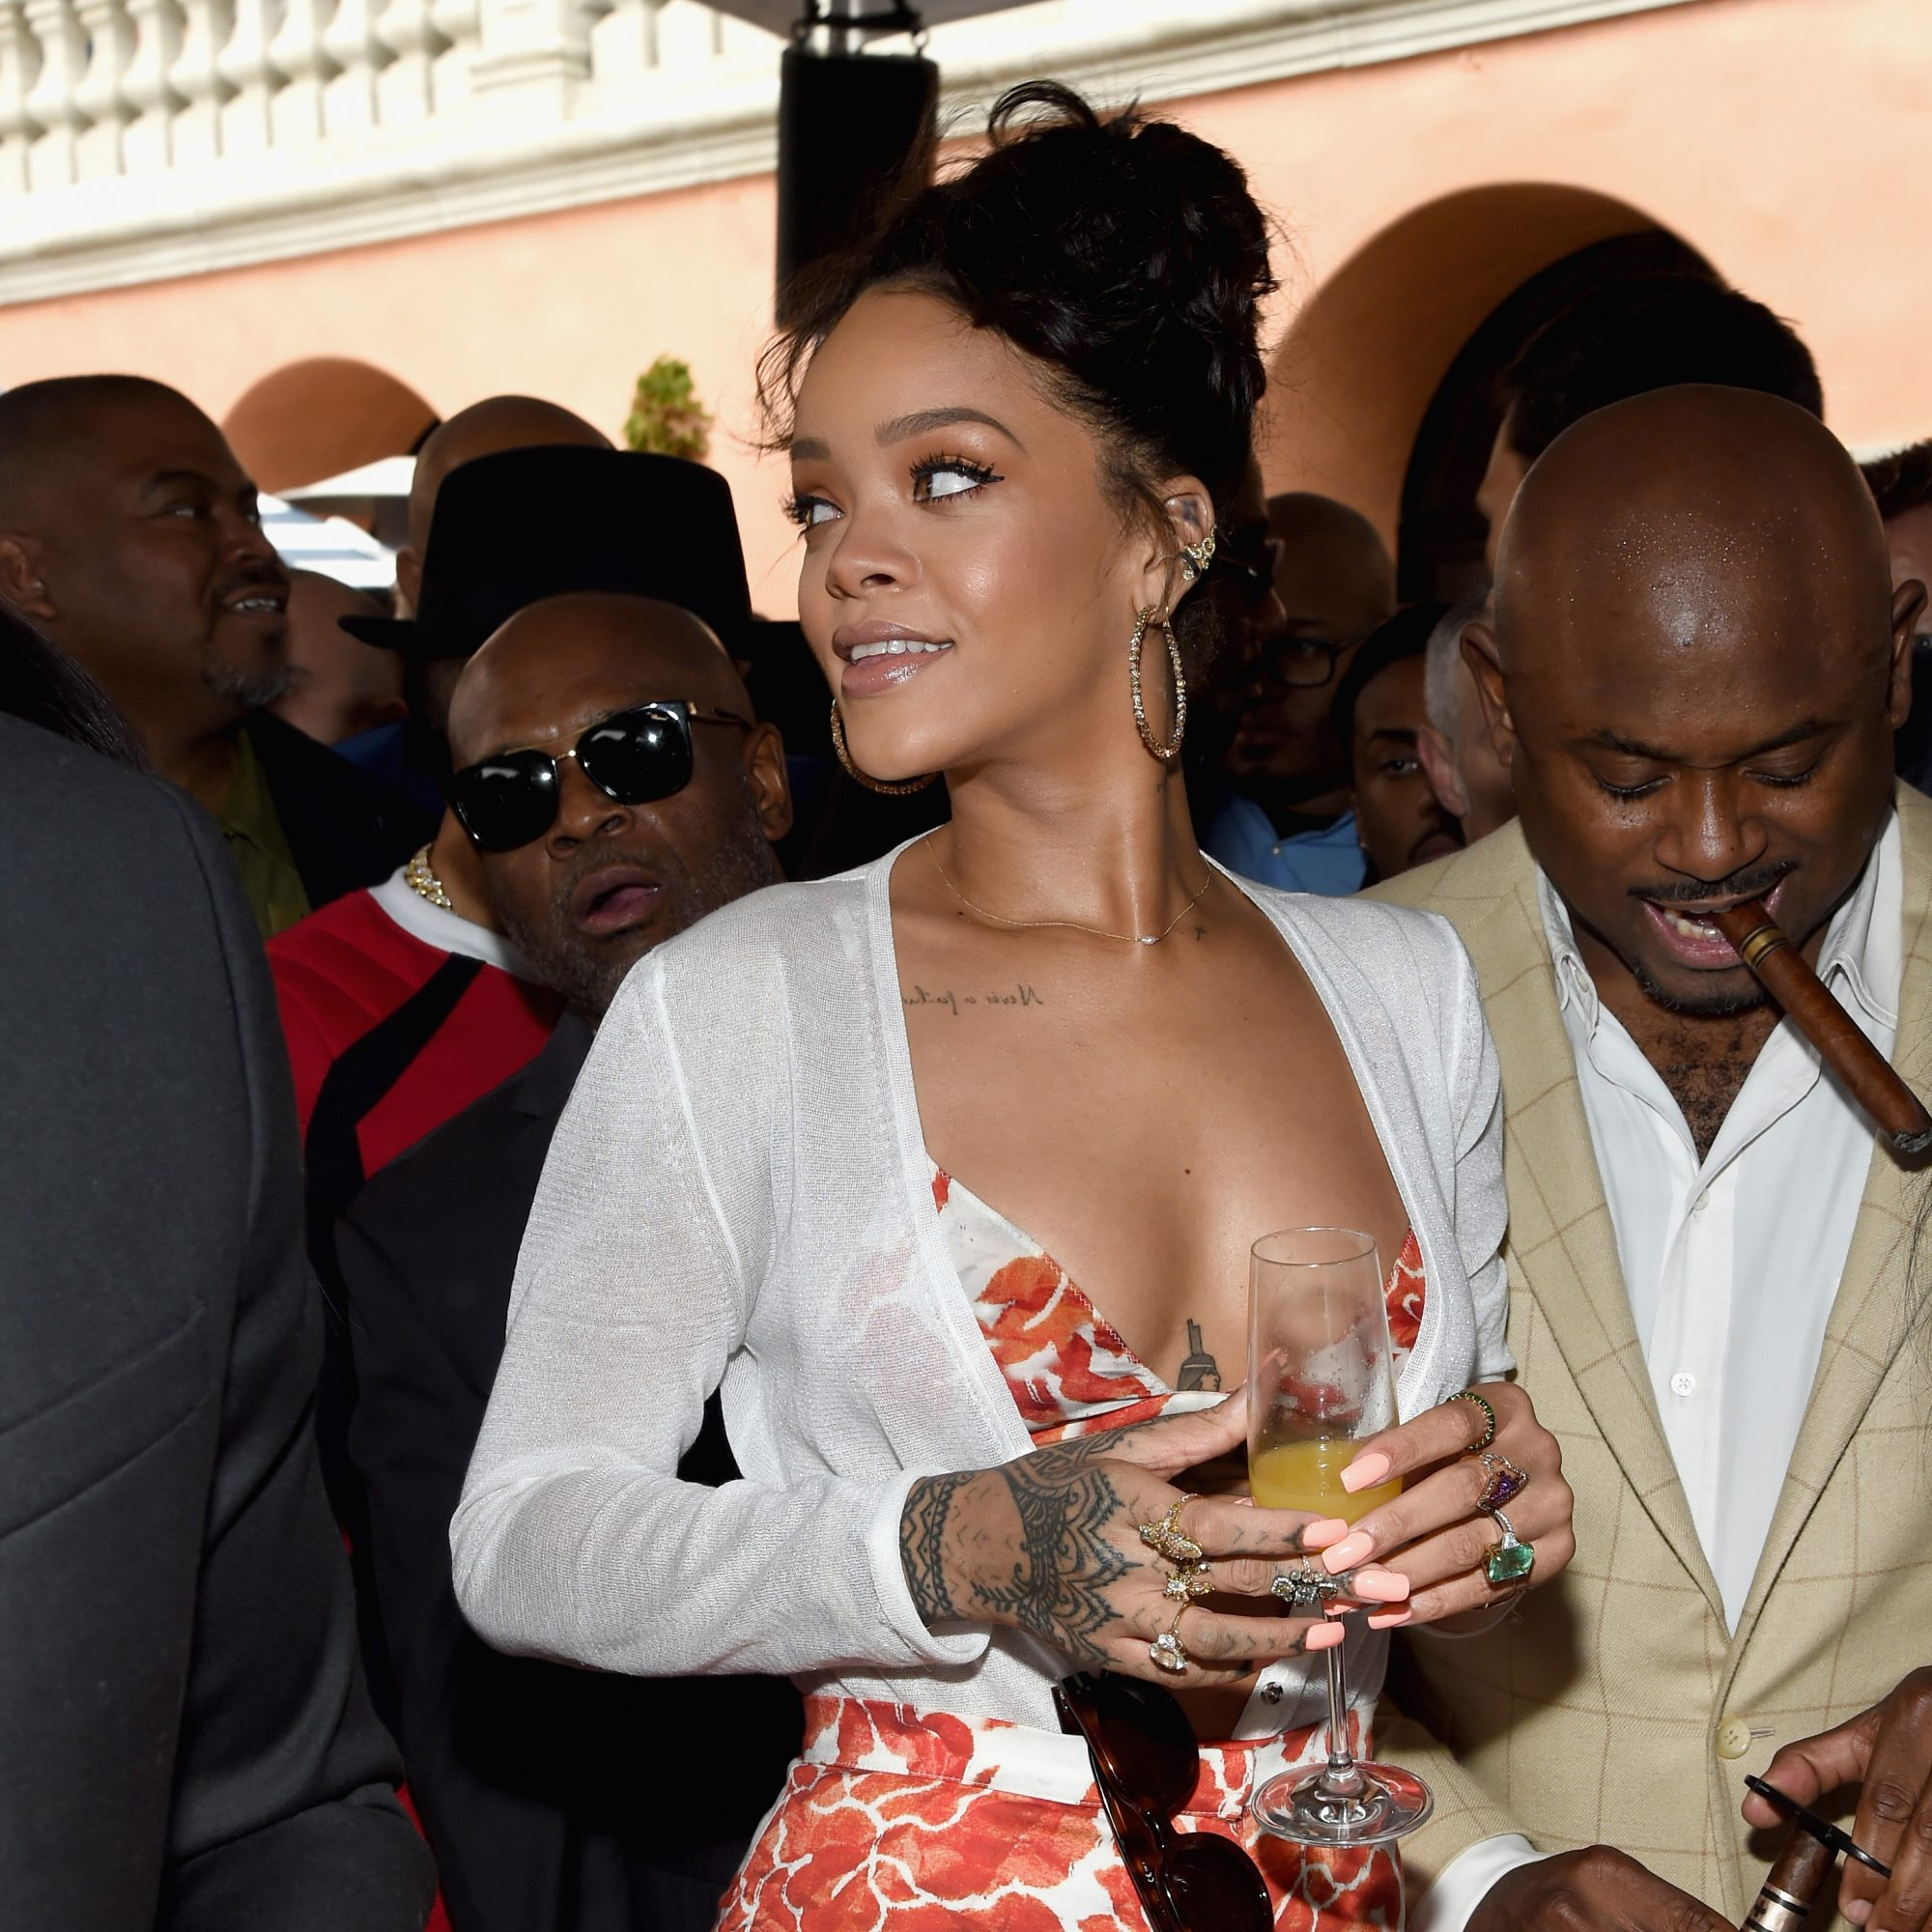 FWX RIHANNA WINE GLASS